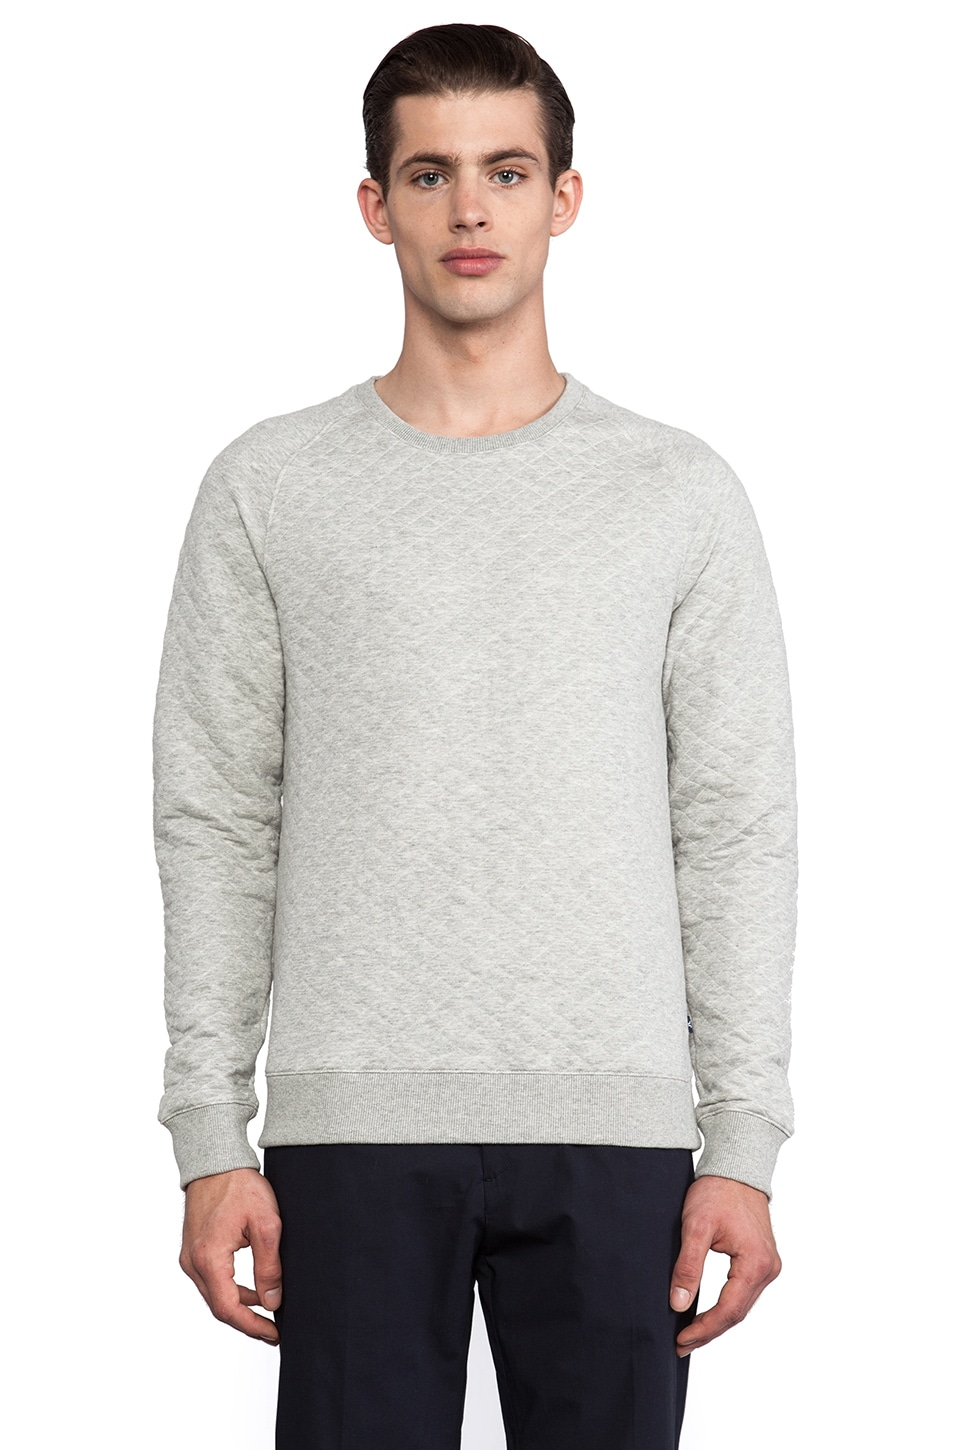 J. Lindeberg Chad 2.0 Quilted Jersey Pullover in Light Grey Melange